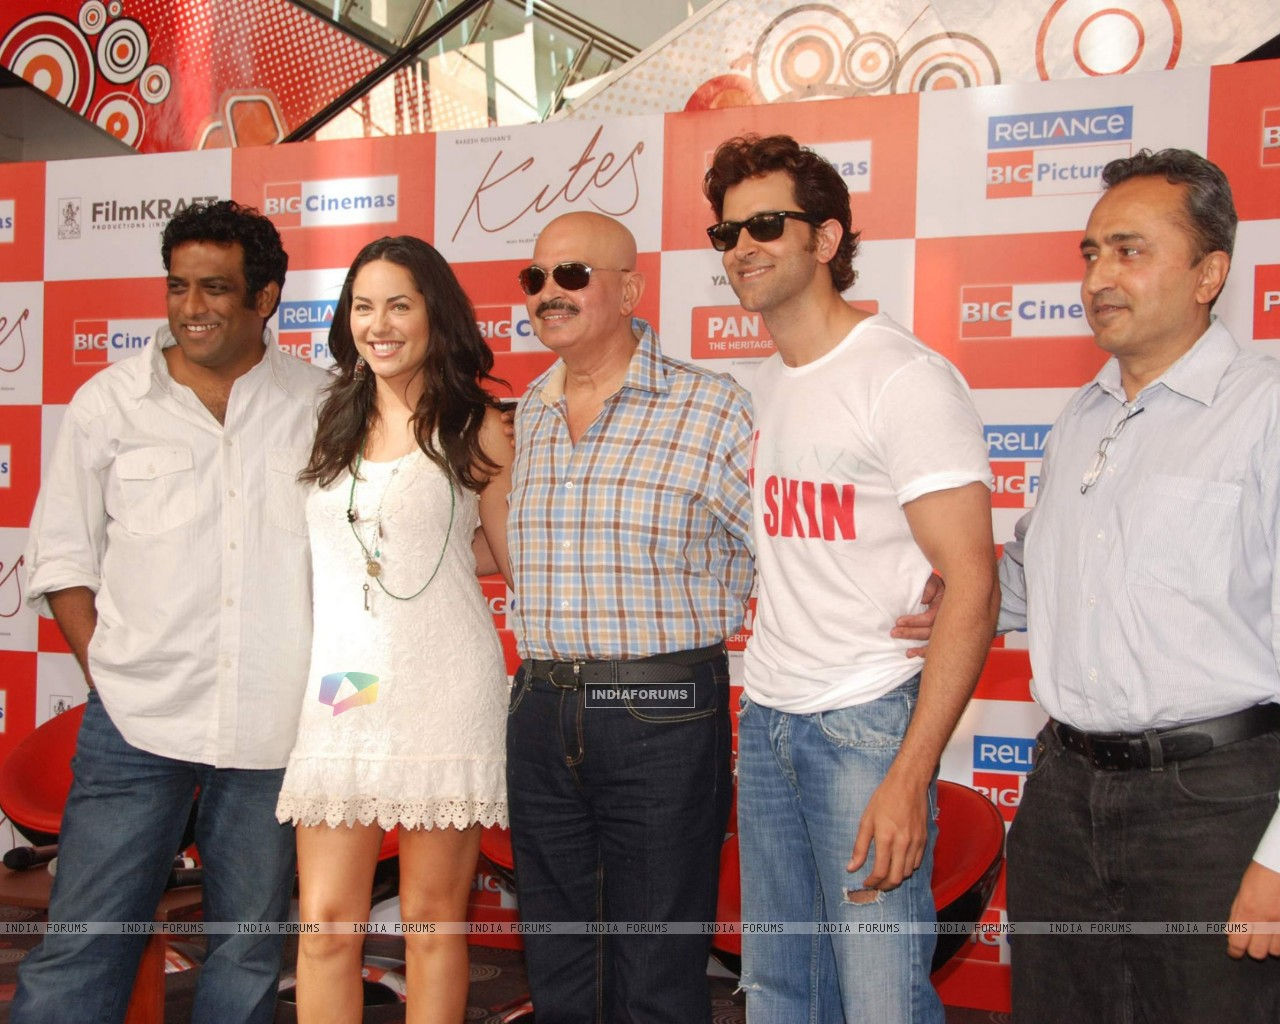 Hrithik Roshan, Rakesh Roshan and Barbara Mori at Kites promotional event at R City Mall and IMAX (87852) size:1280x1024